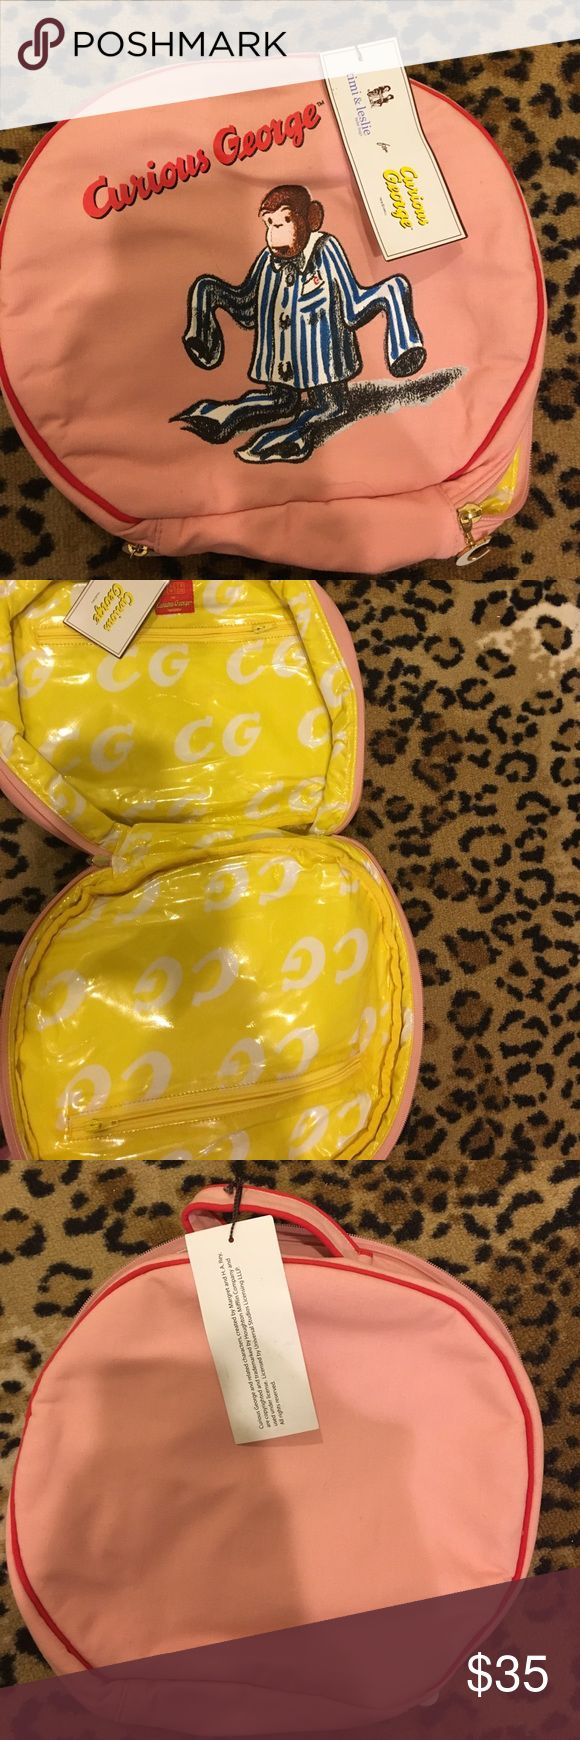 Adorable curious George travel pouch NWT This bag has many uses and is super cute! Timi & Leslie Bags